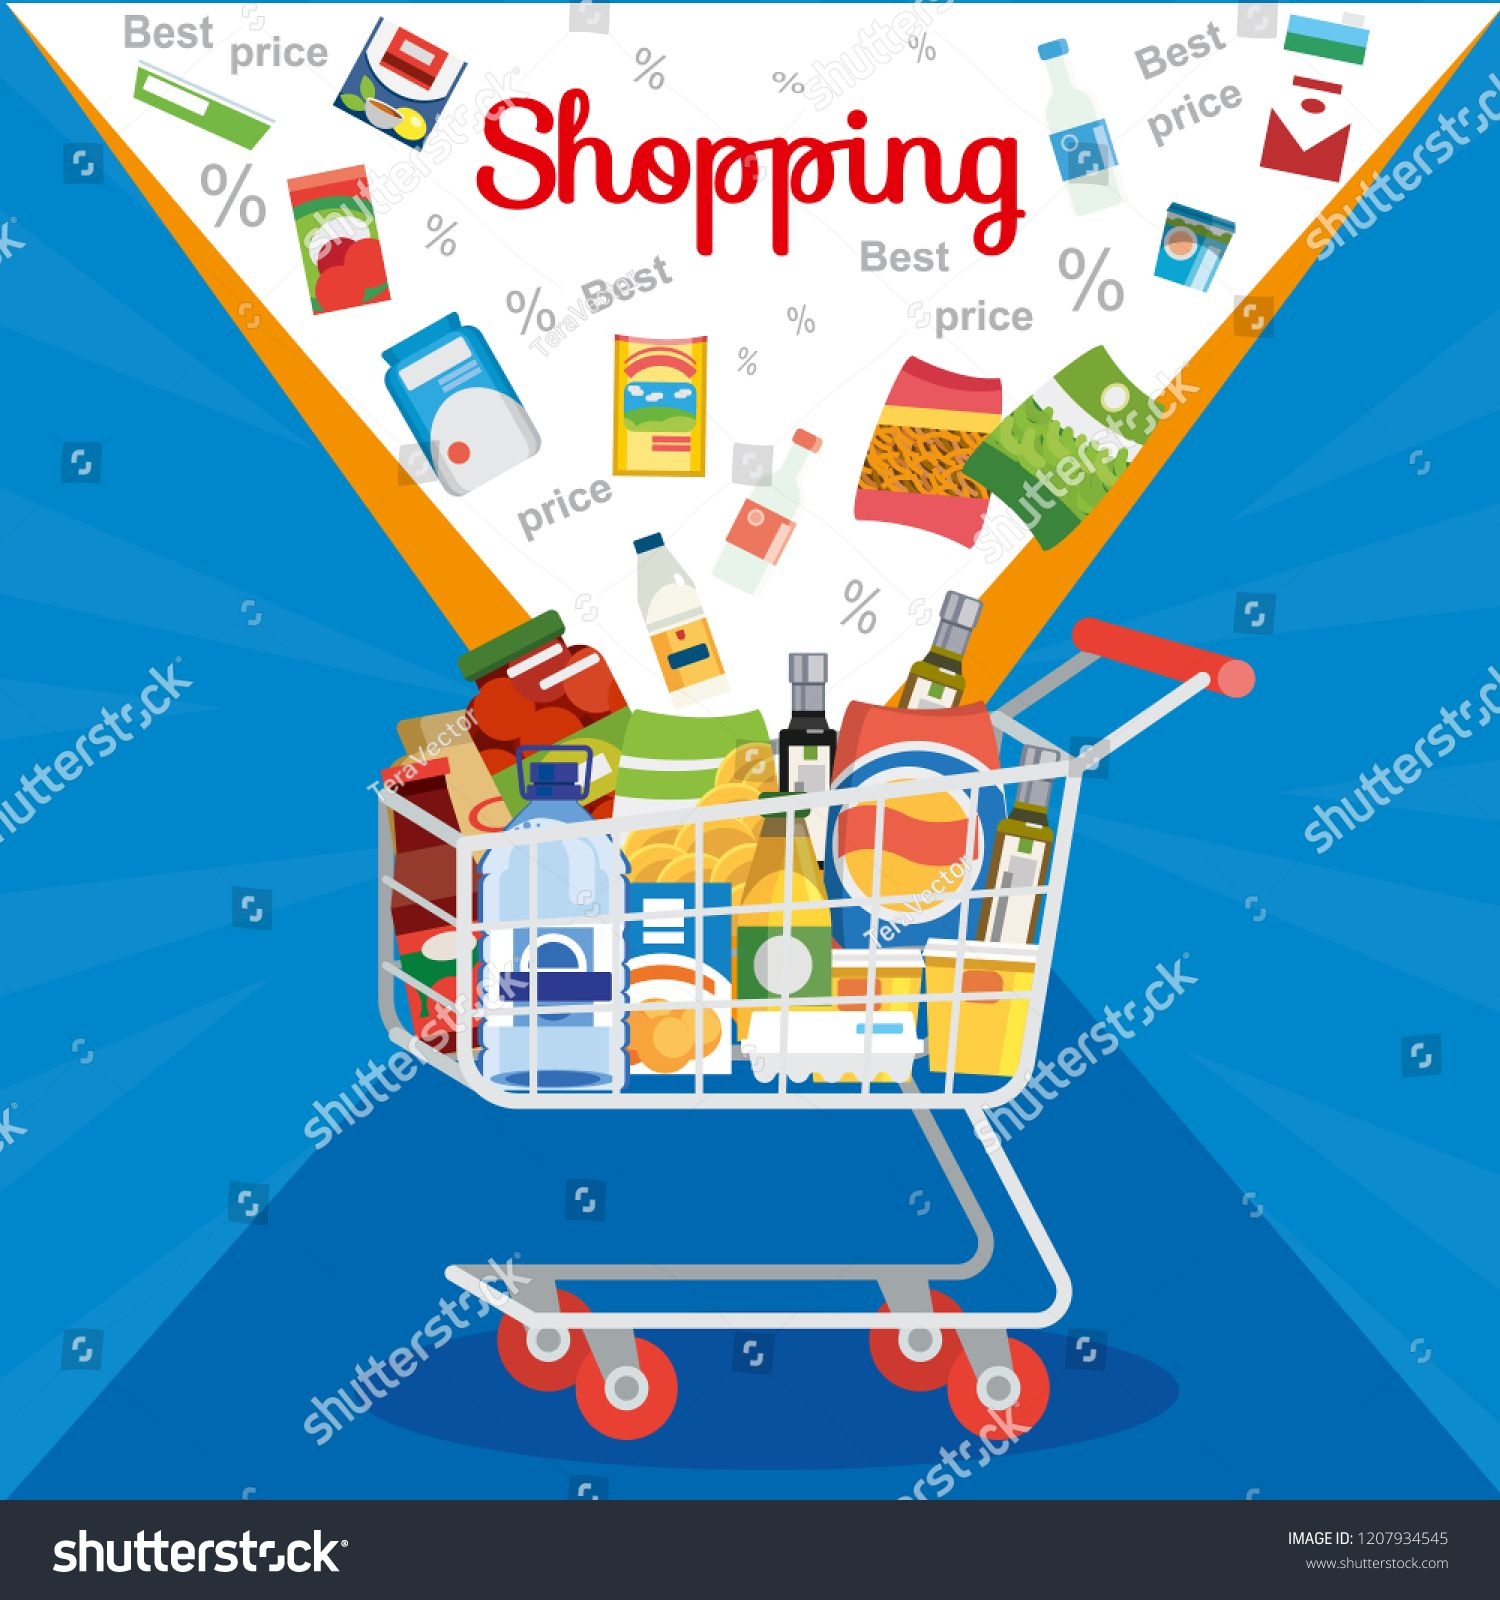 e4f0c79ef8bc6 Shopping Food Products on Sale Flat Vector Concept with Groceries Falling  in Supermarket Cart or Trolley Illustration in Blue Background.